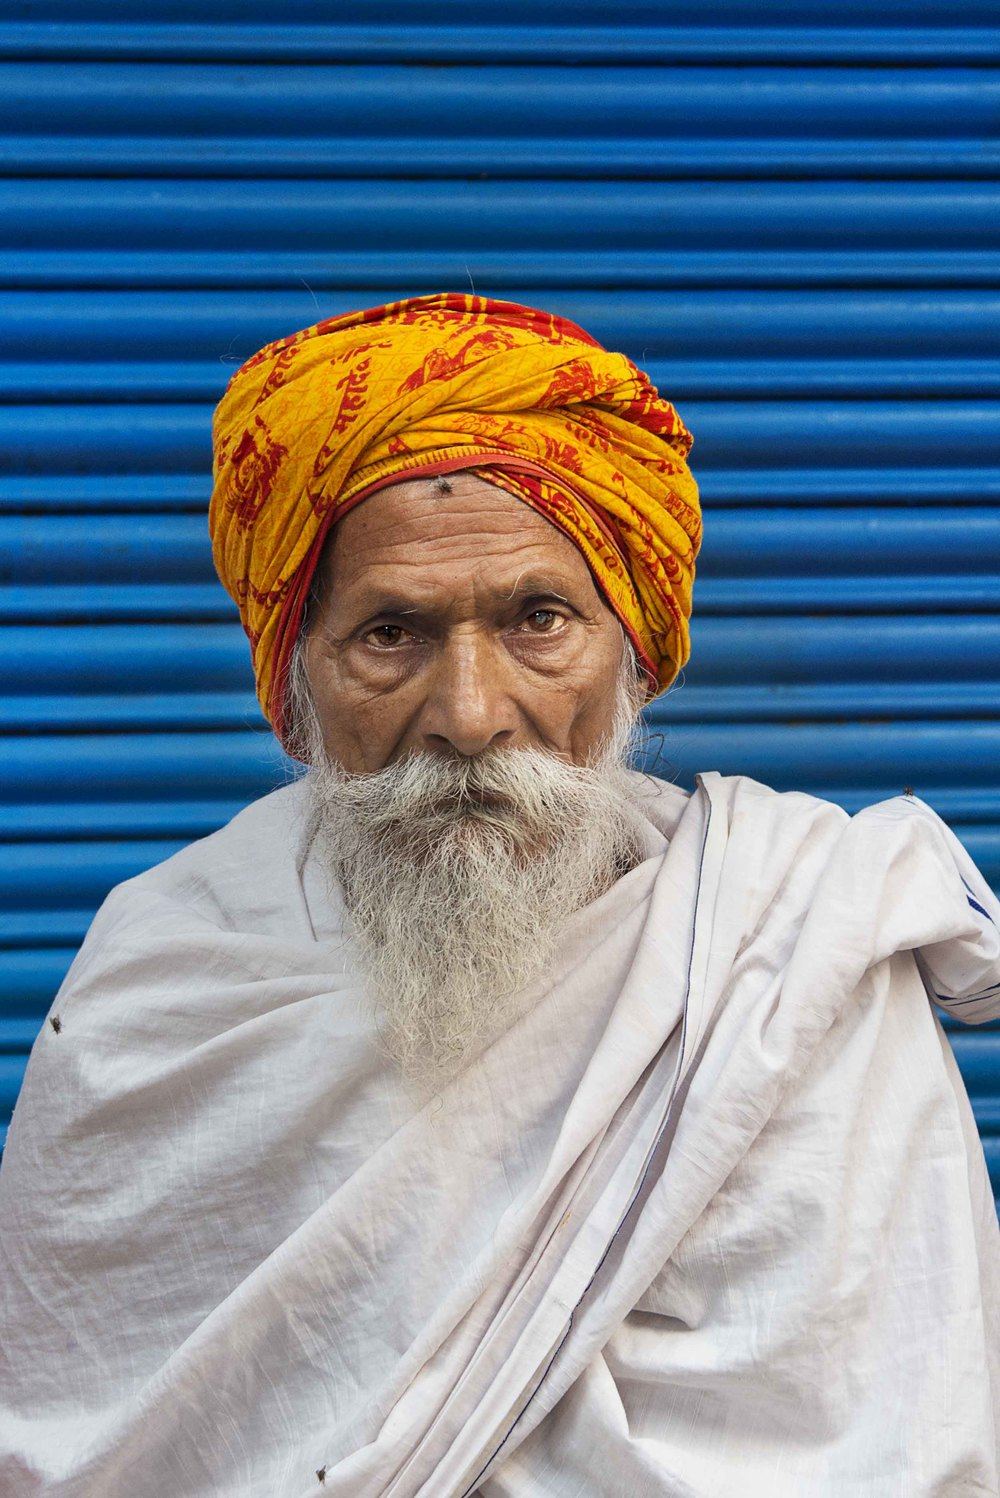 Last Sadhu. Heading to airport, flying to Kathmandu in a few hours Namaste Varanasi